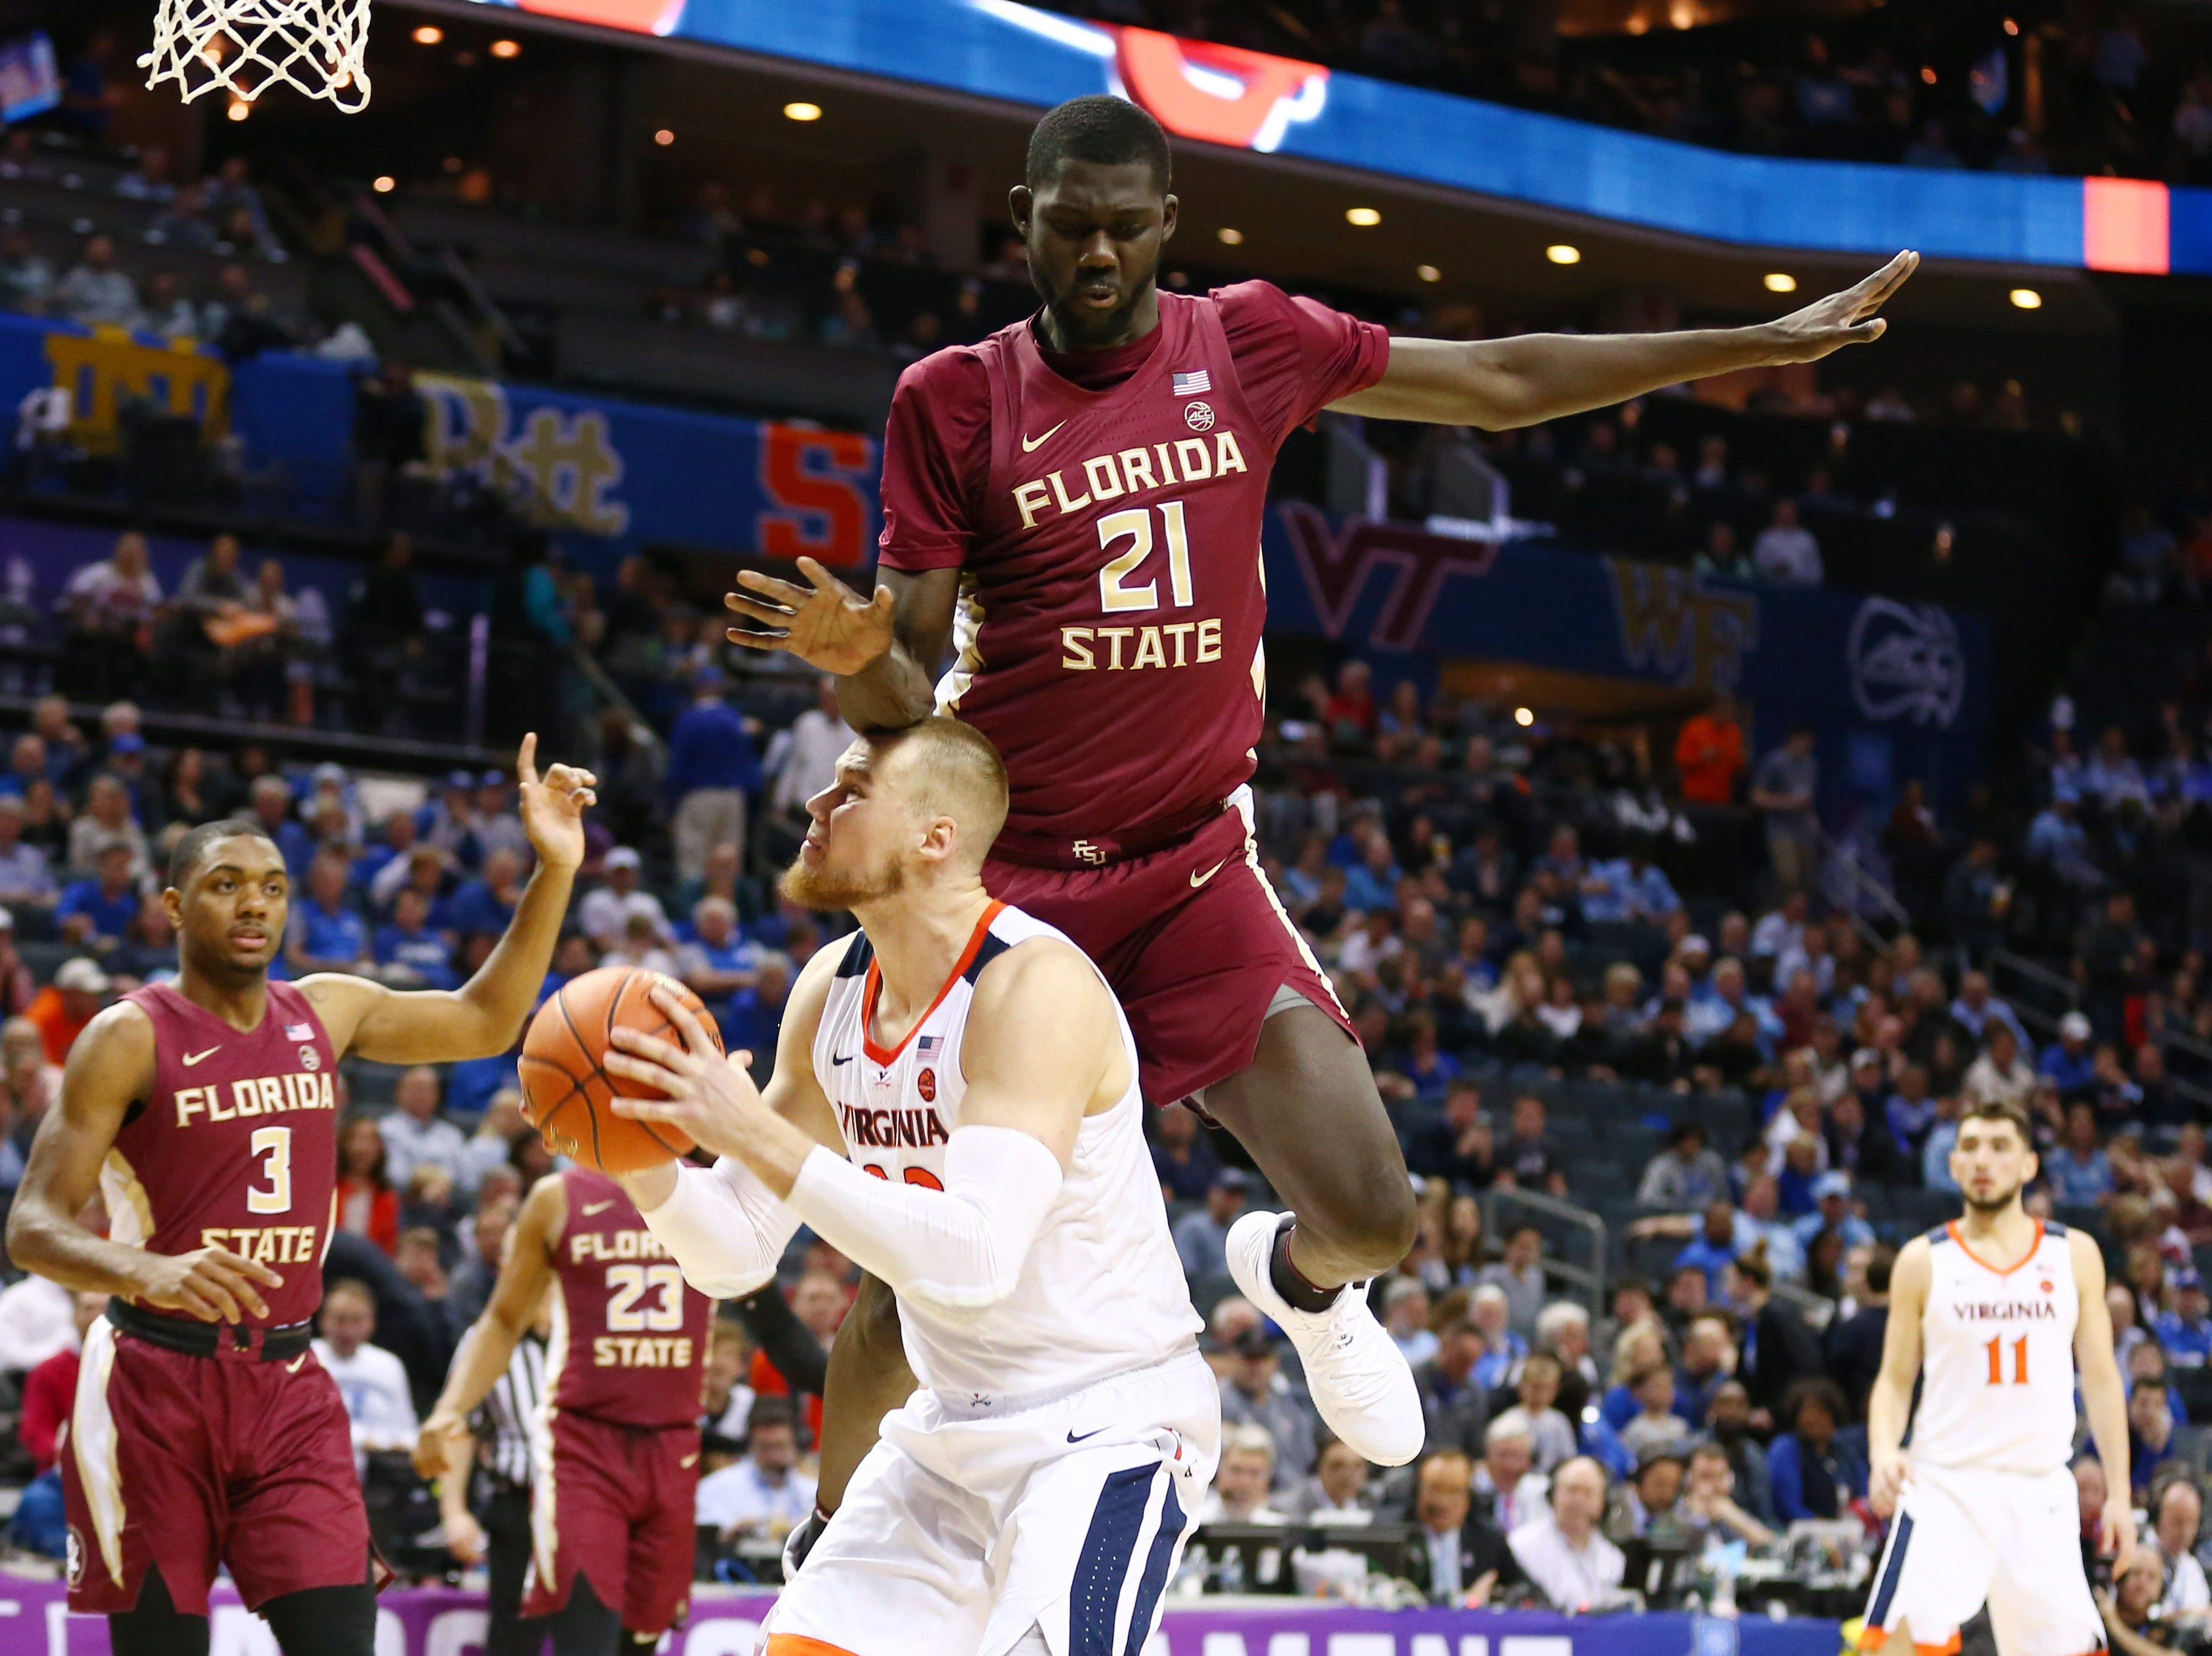 Mar 15, 2019; Charlotte, NC, USA; Virginia Cavaliers center Jack Salt (33) is fouled by Florida State Seminoles center Christ Koumadje (21) in the second half in the ACC conference tournament at Spectrum Center. Mandatory Credit: Jeremy Brevard-USA TODAY Sports